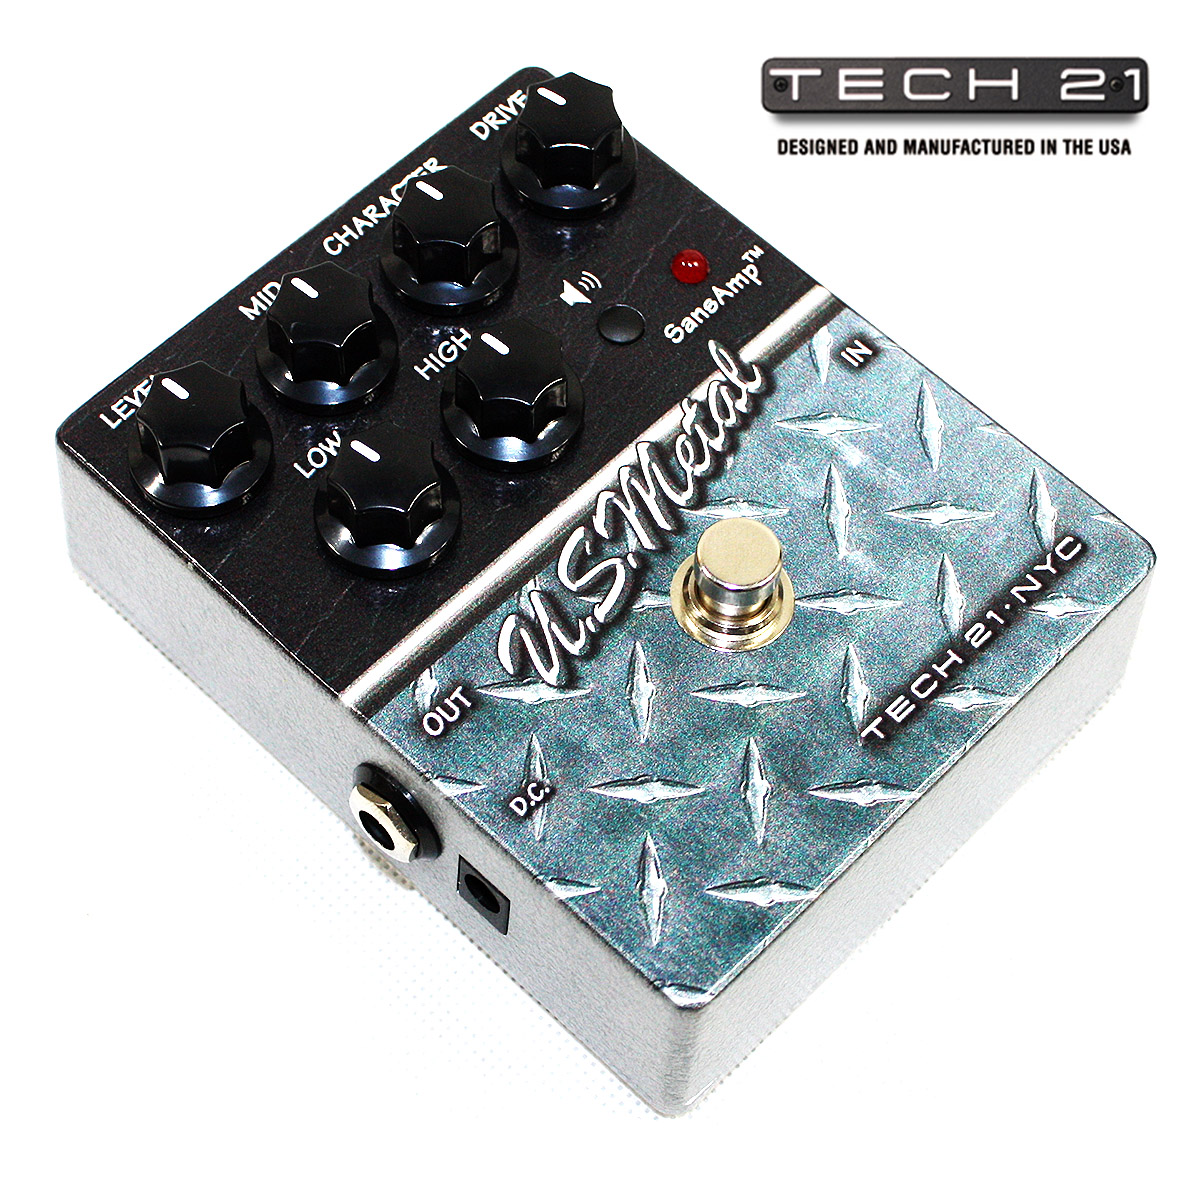 Tech21 tech 21 us steel american distortion stompbox genuine mail